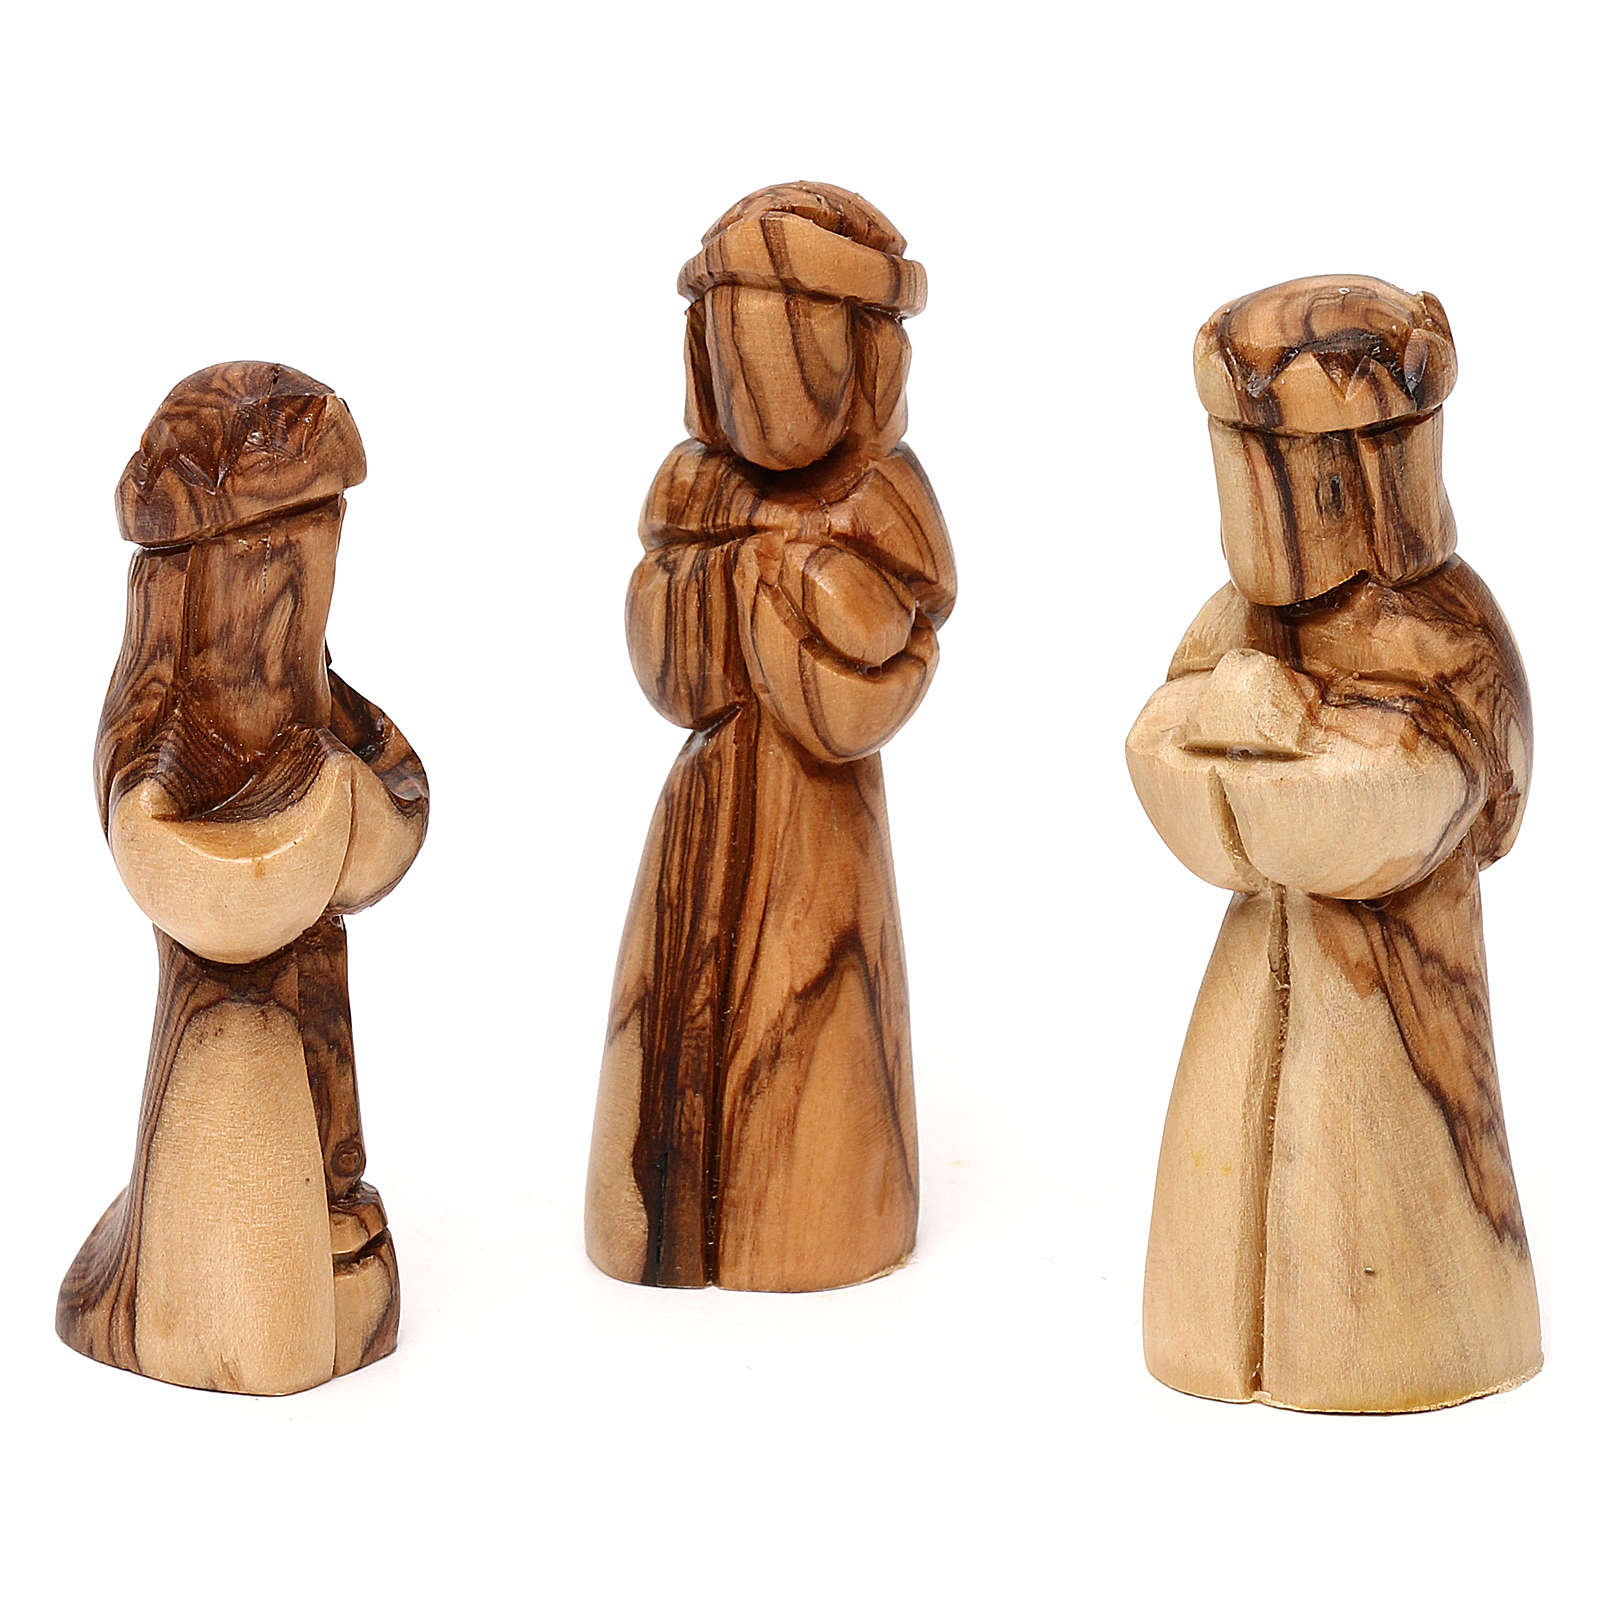 Nativity scene with cave in Bethlehem olive wood, star and palm tree 20x20x15 cm 4